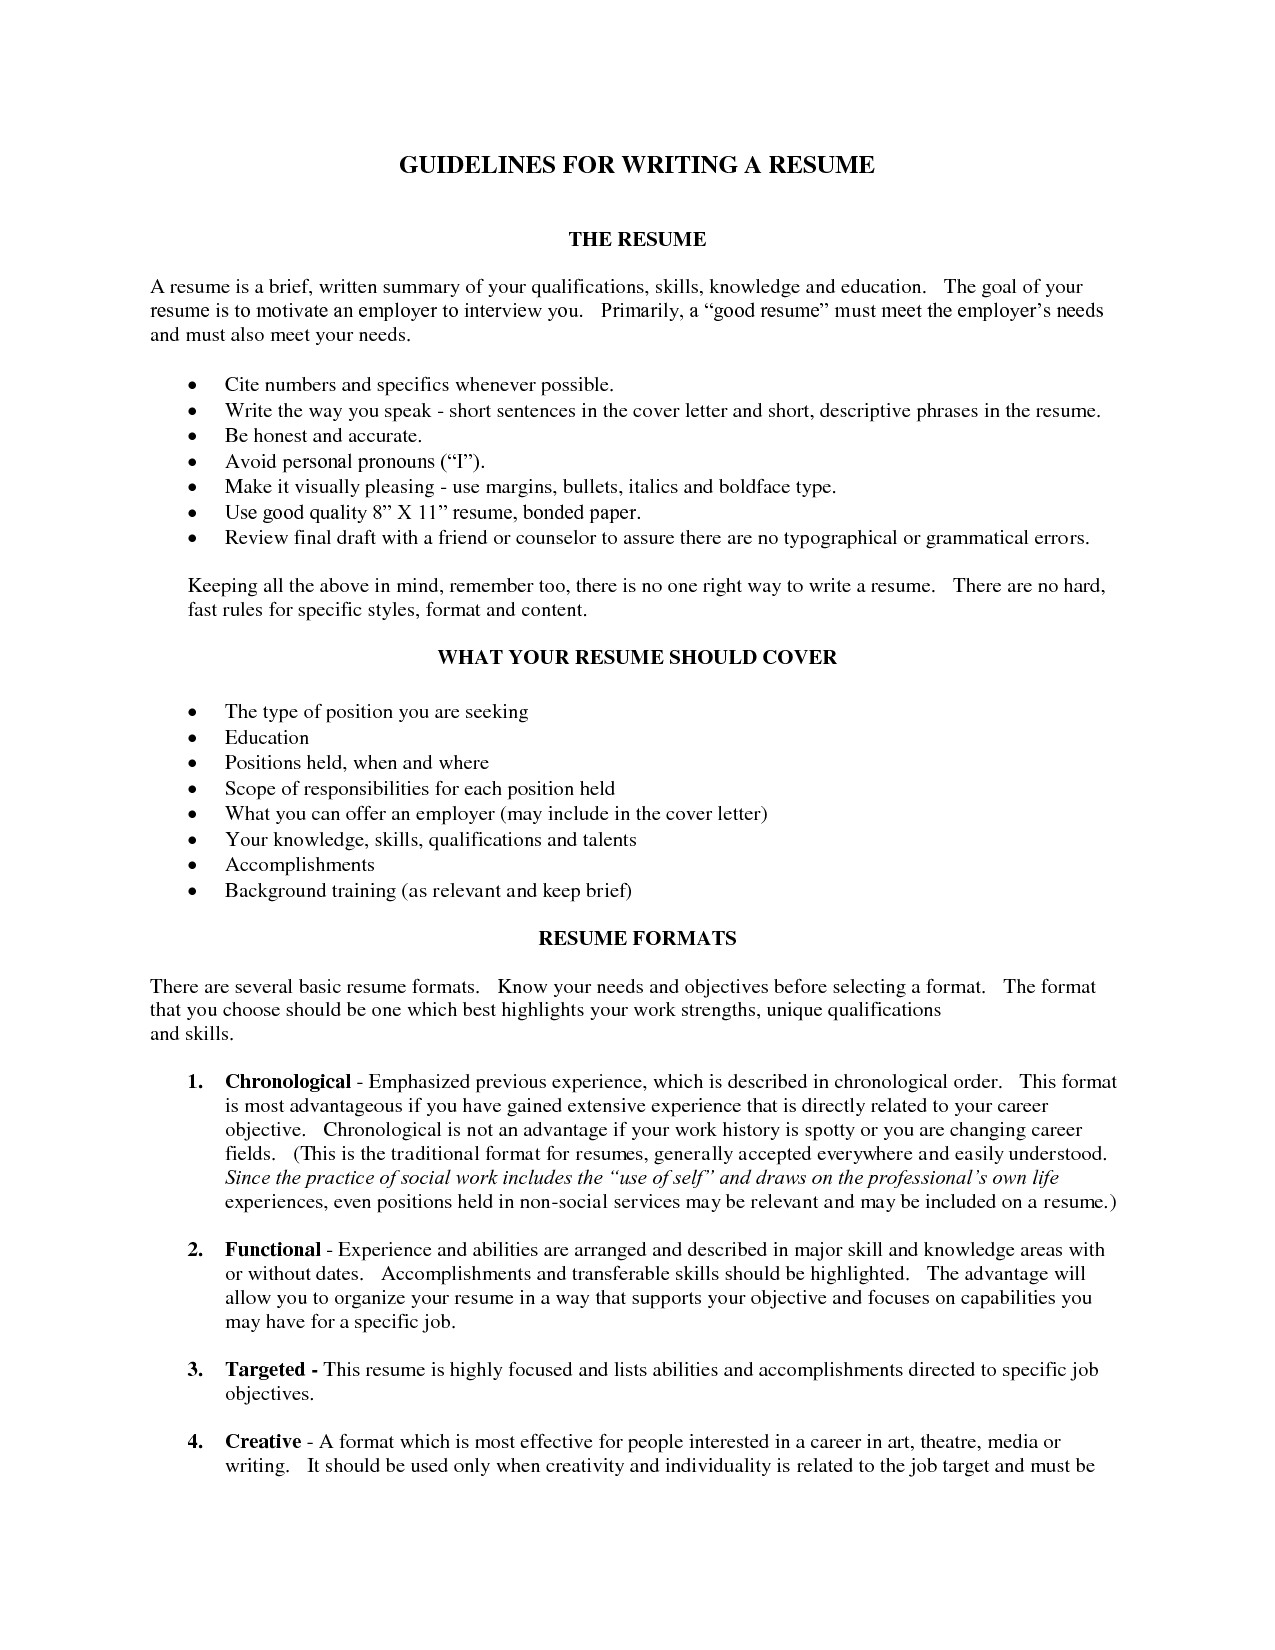 Resume Summary Examples Resumes Professional Summary Examples Resume To Inspire You How